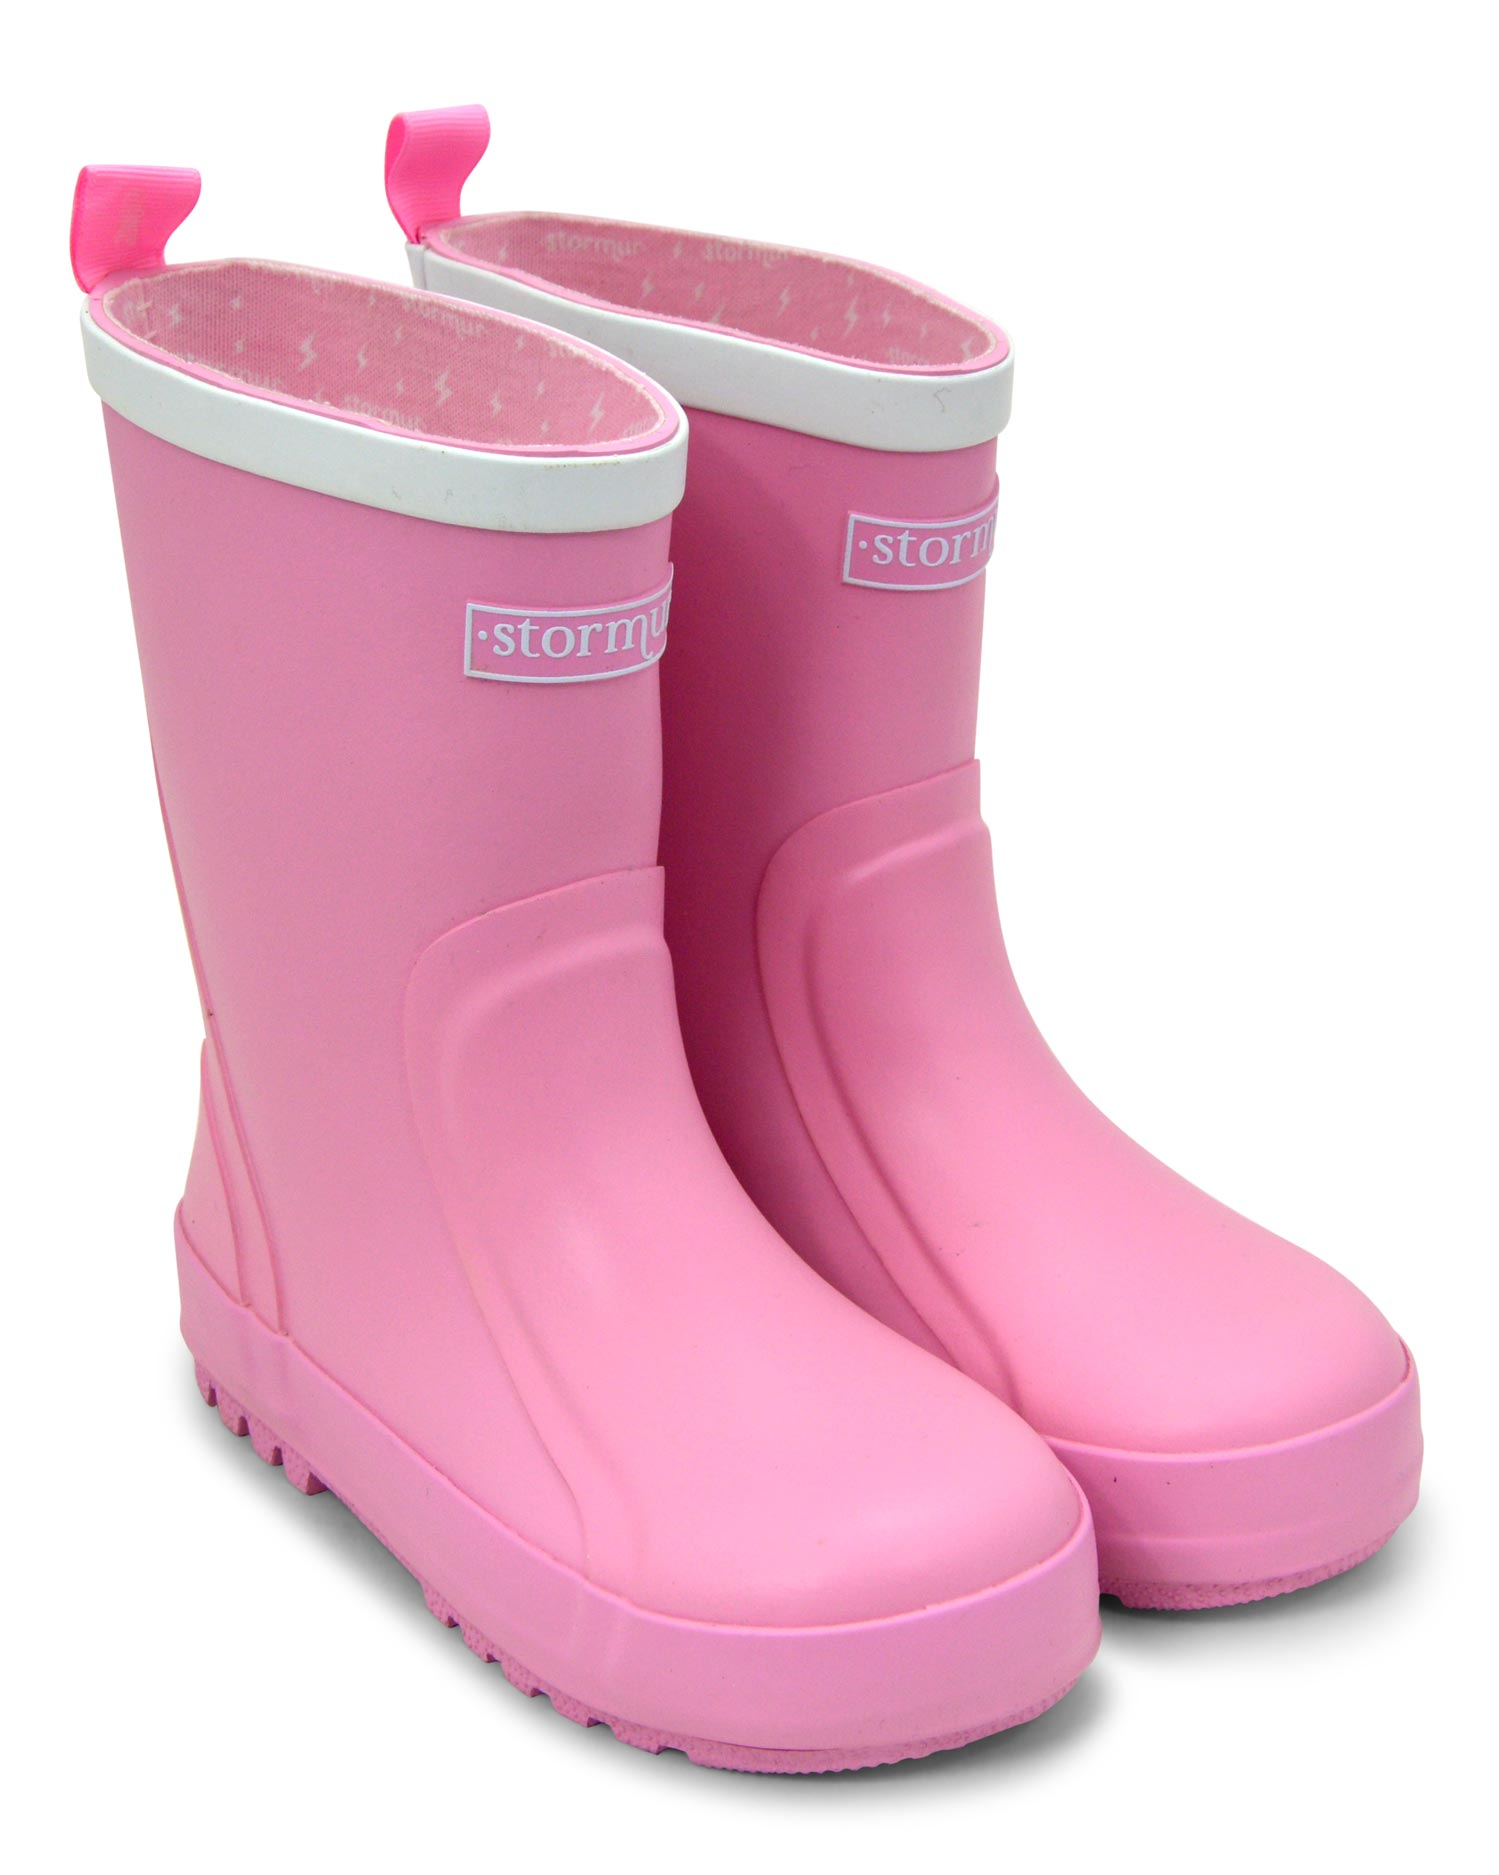 Splasher Pink Kids Gumboots